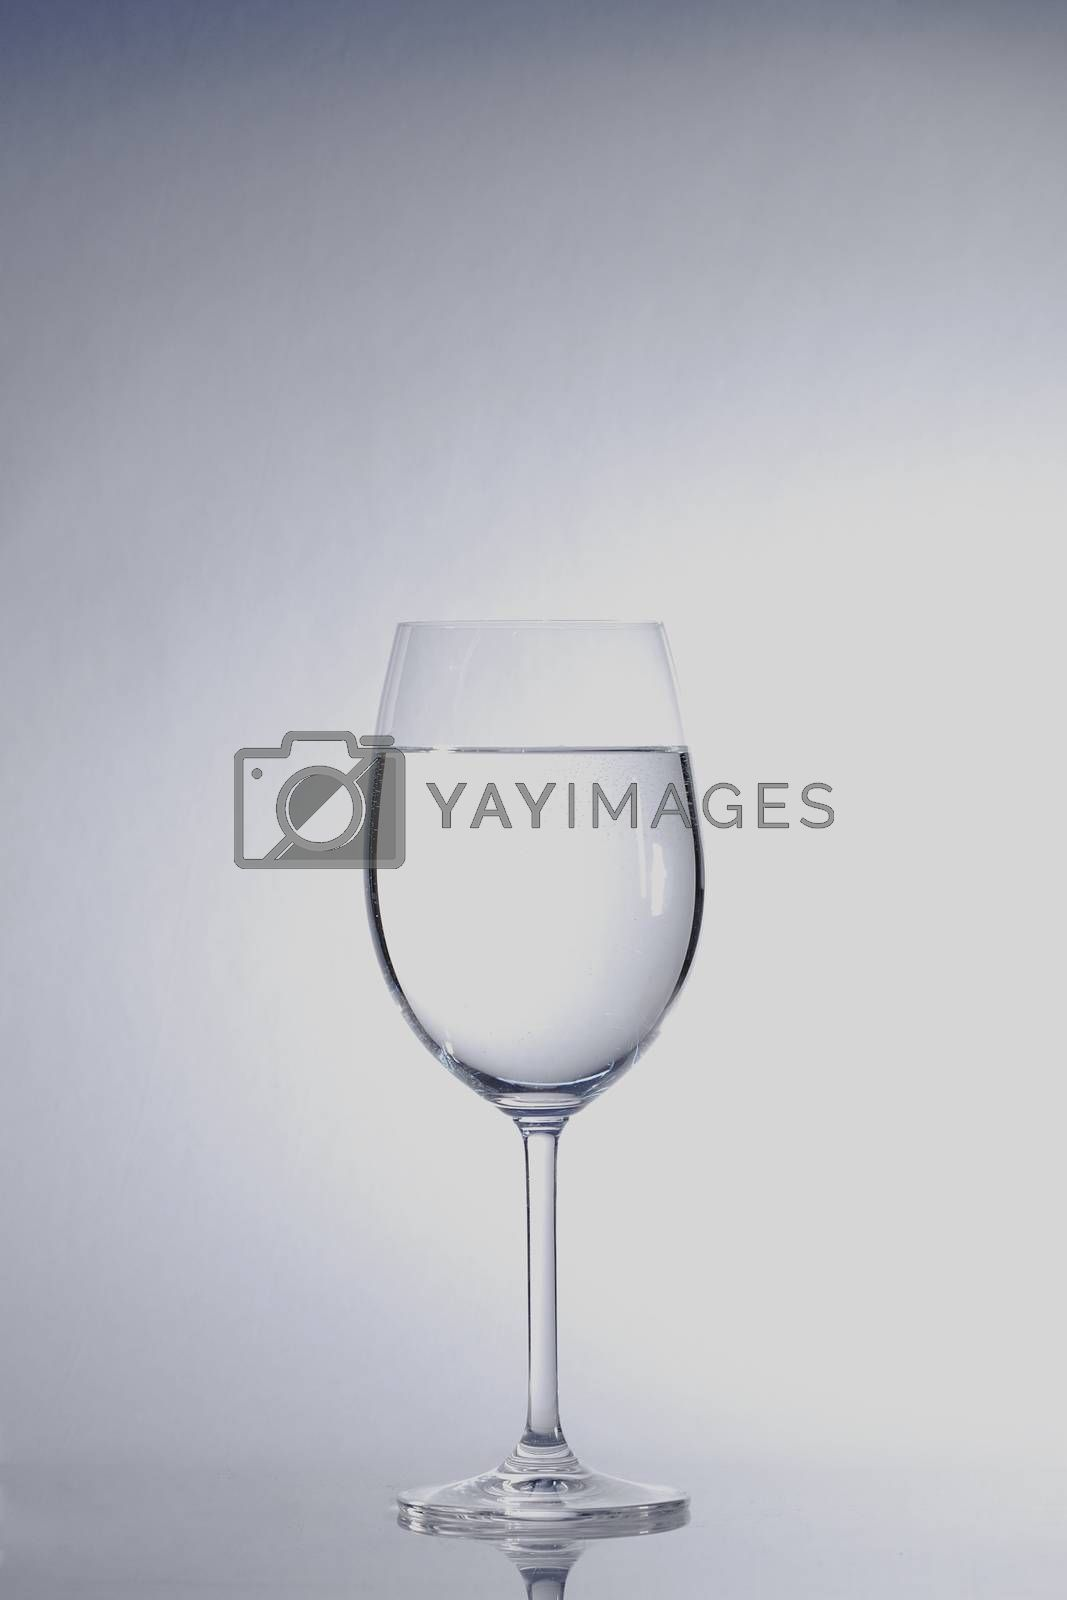 clear transparent water in the wine glass center